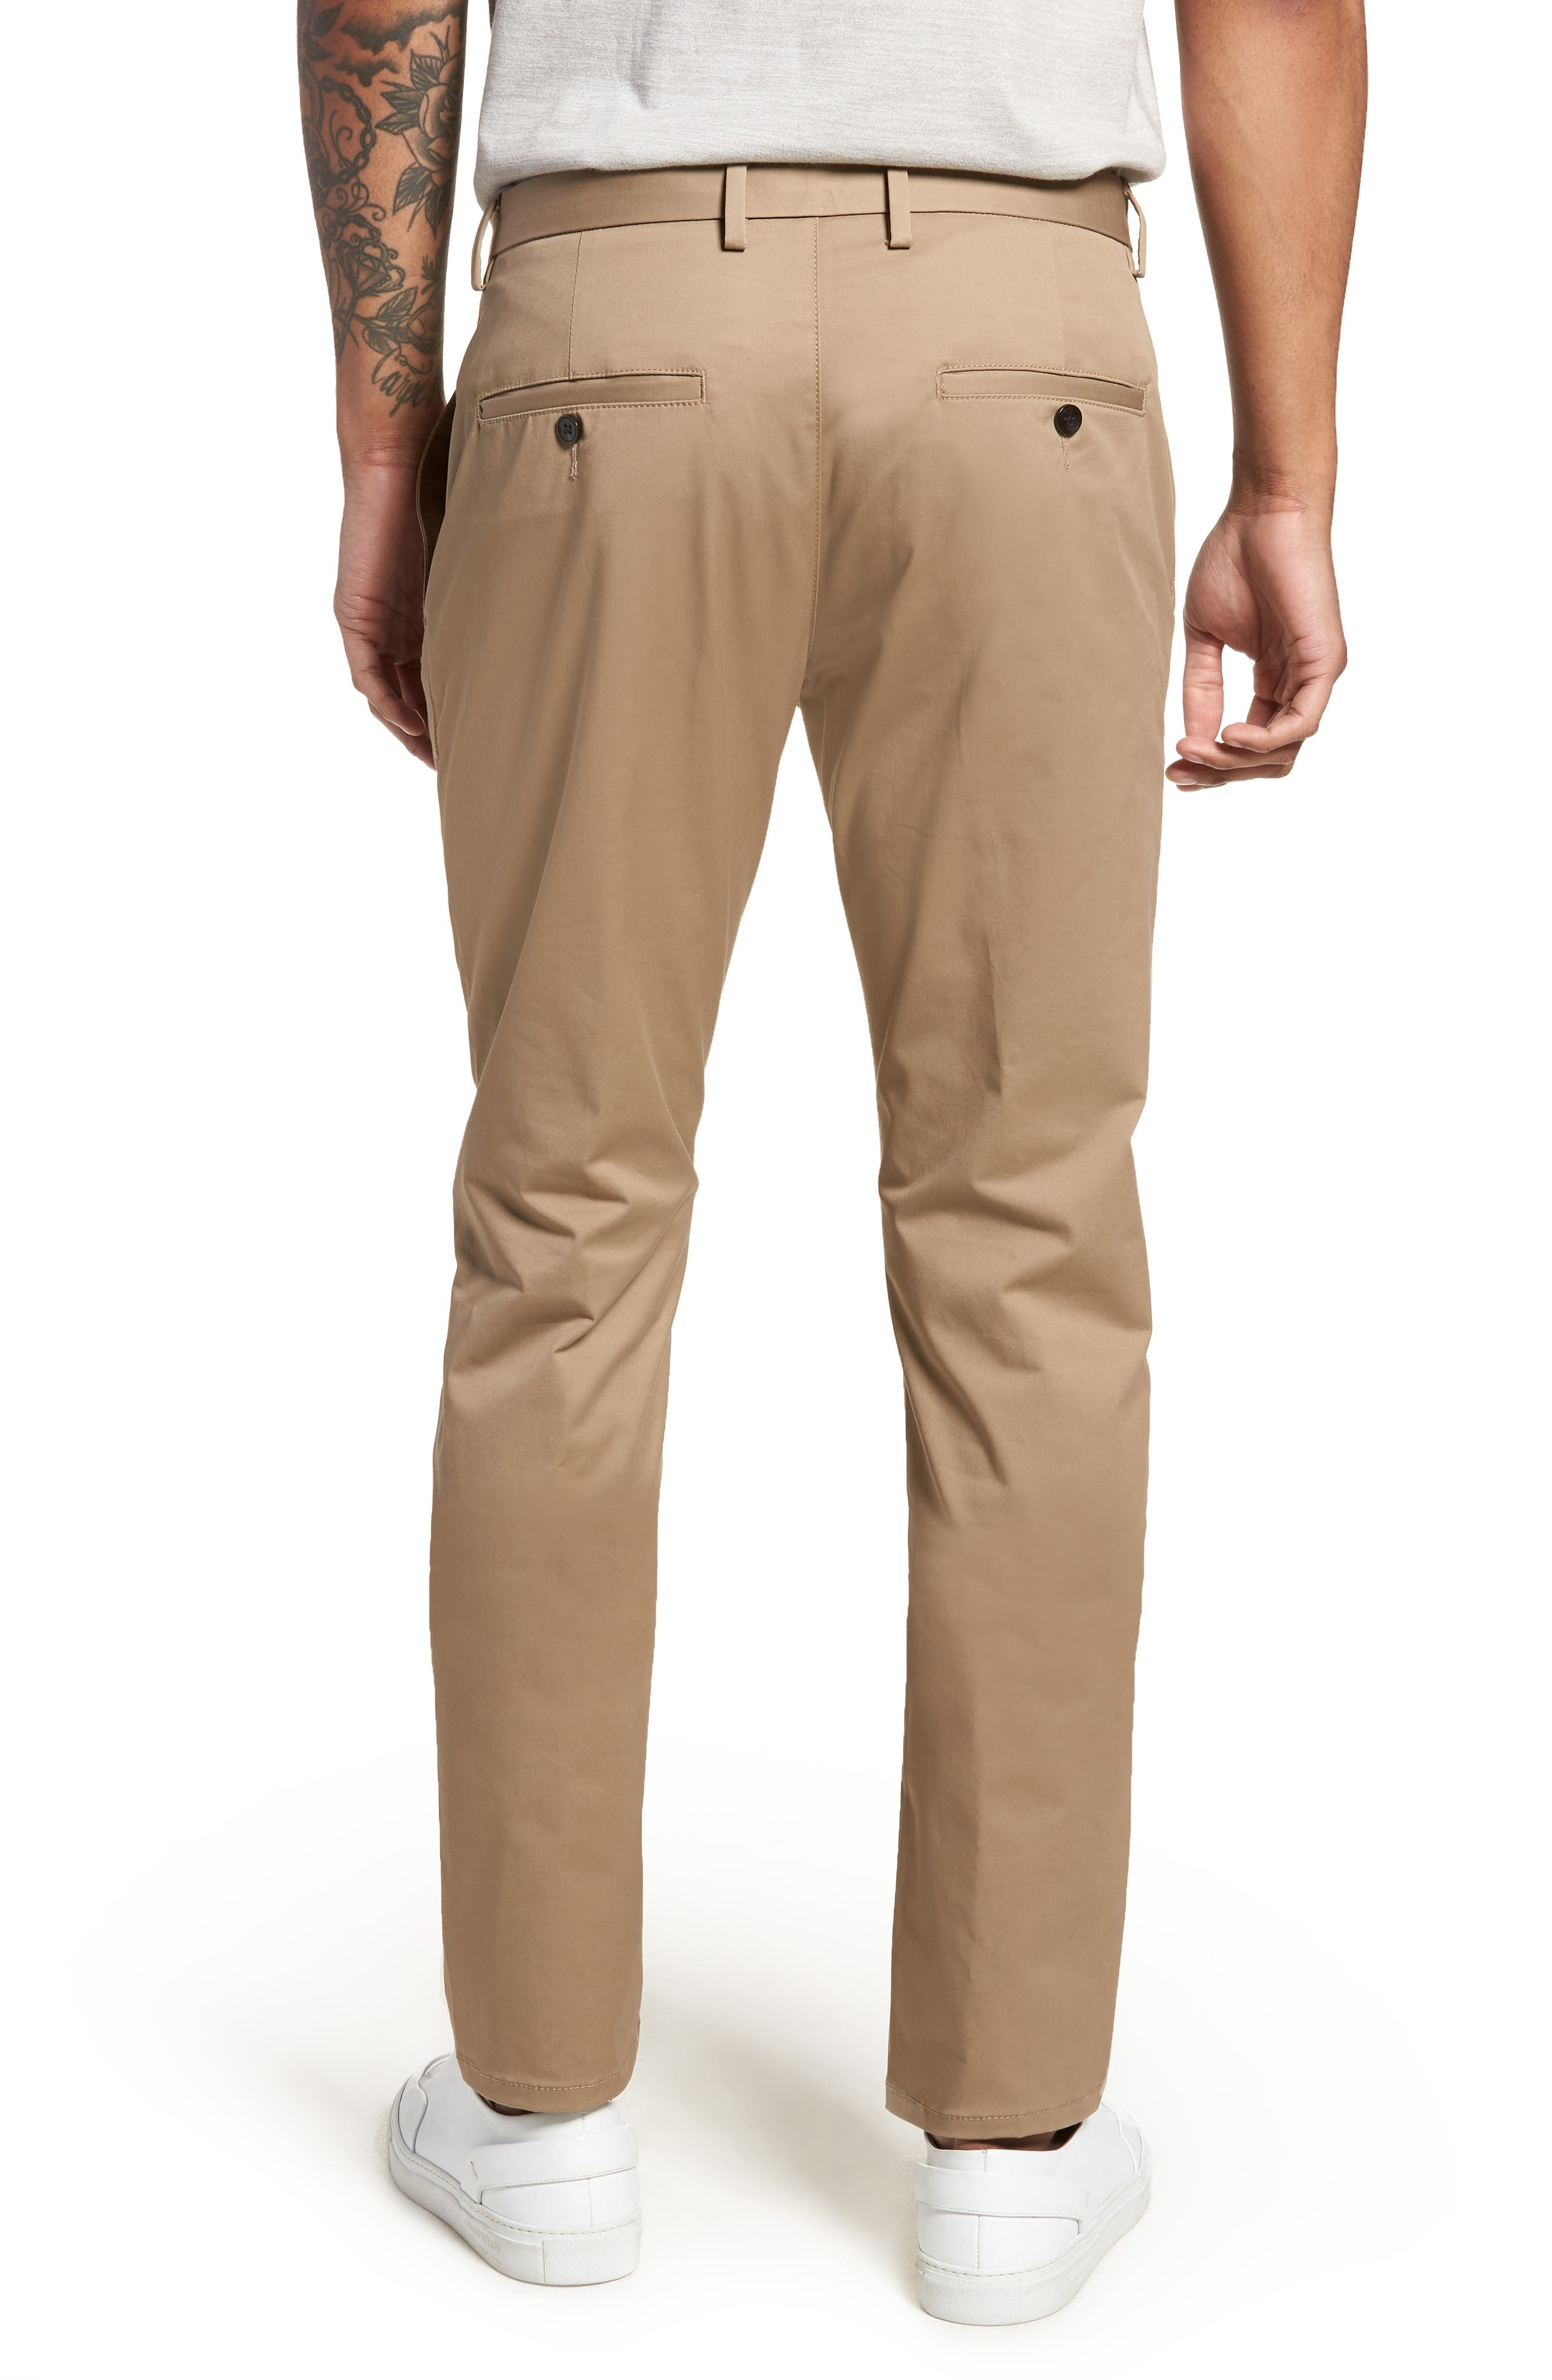 Helgo Flat Front Stretch Pants,                             Alternate thumbnail 2, color,                             265